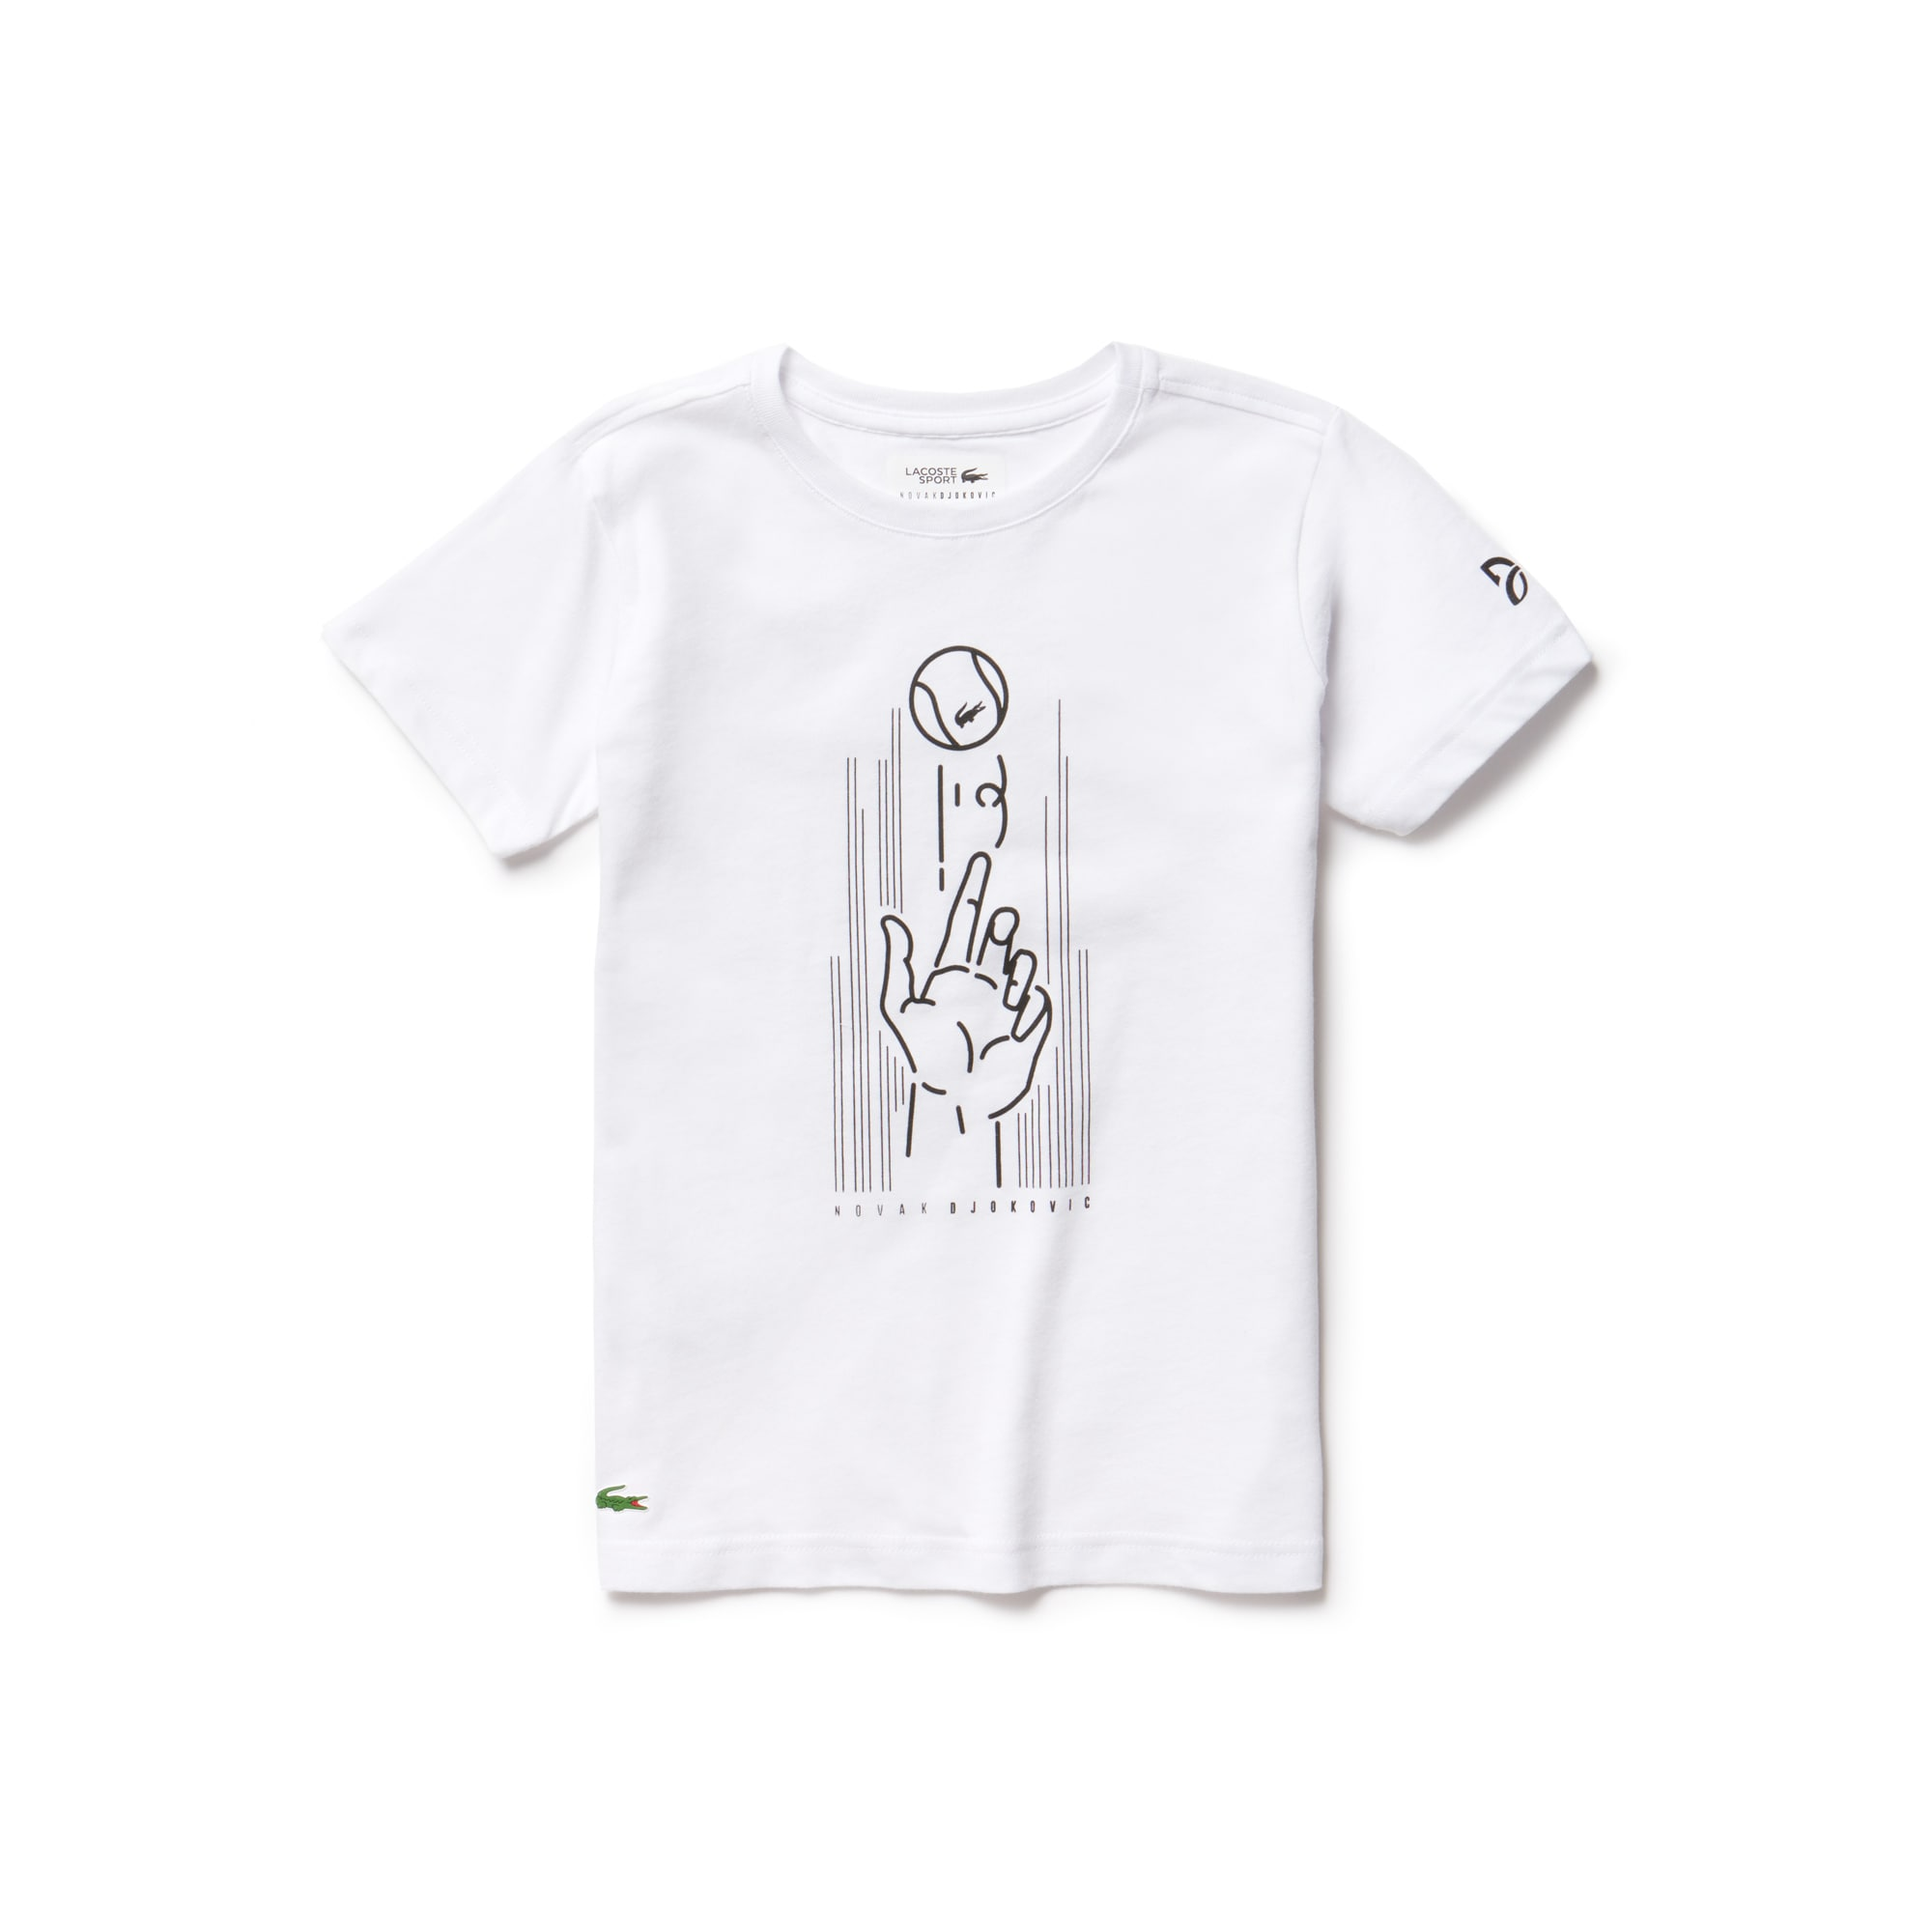 Camiseta De Niño Lacoste SPORT Novak Djokovic Support With Style -Off Court Collection En Tejido De Punto Técnico Estampado